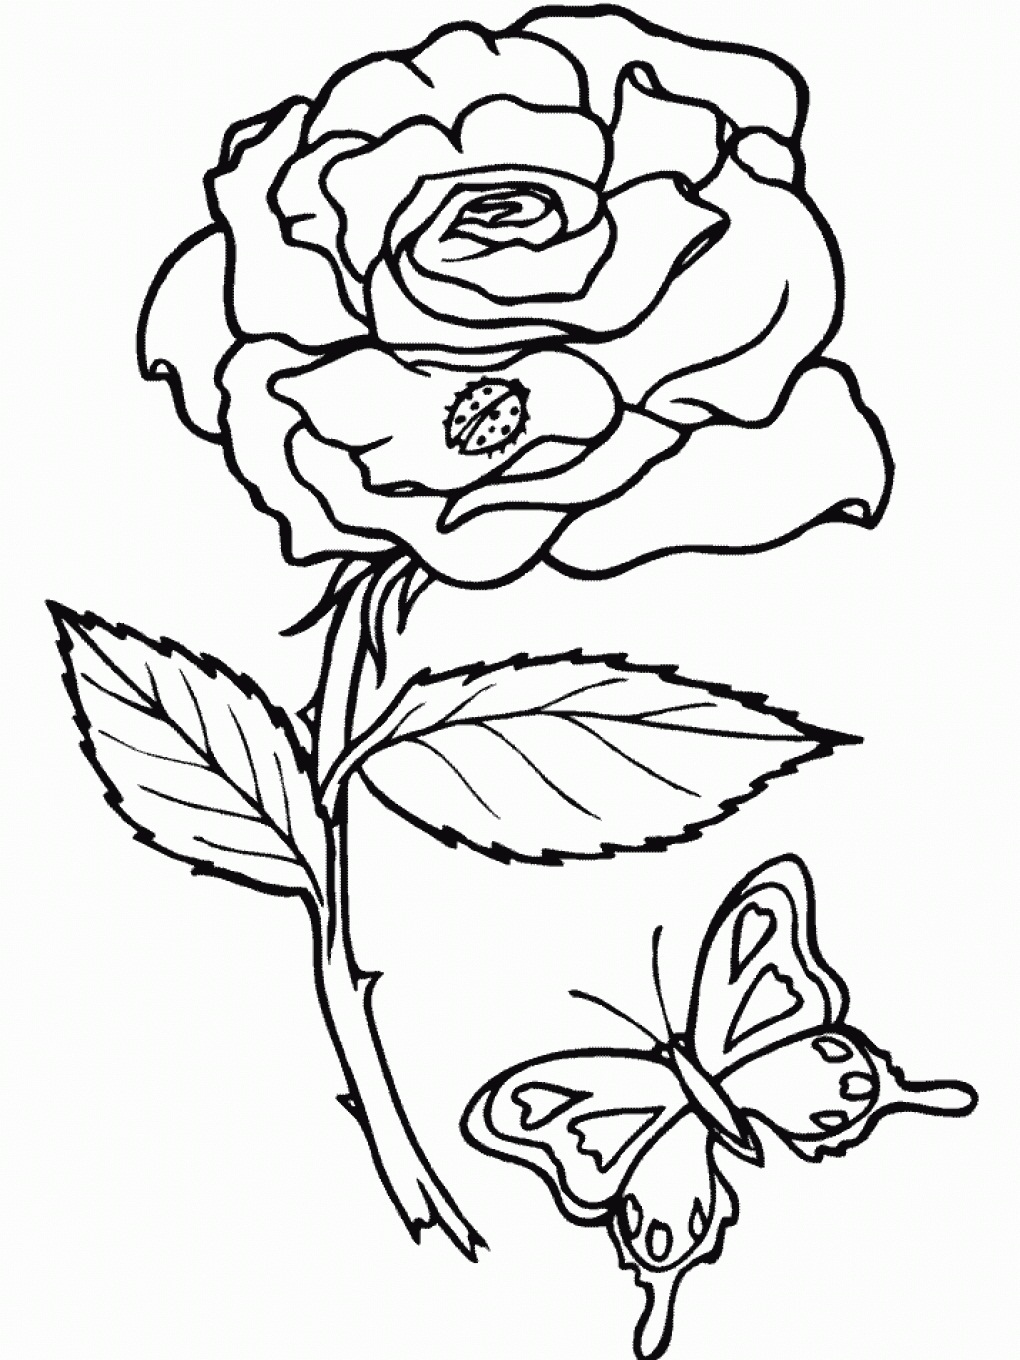 flower coloring pages printable free - free printable roses coloring pages for kids